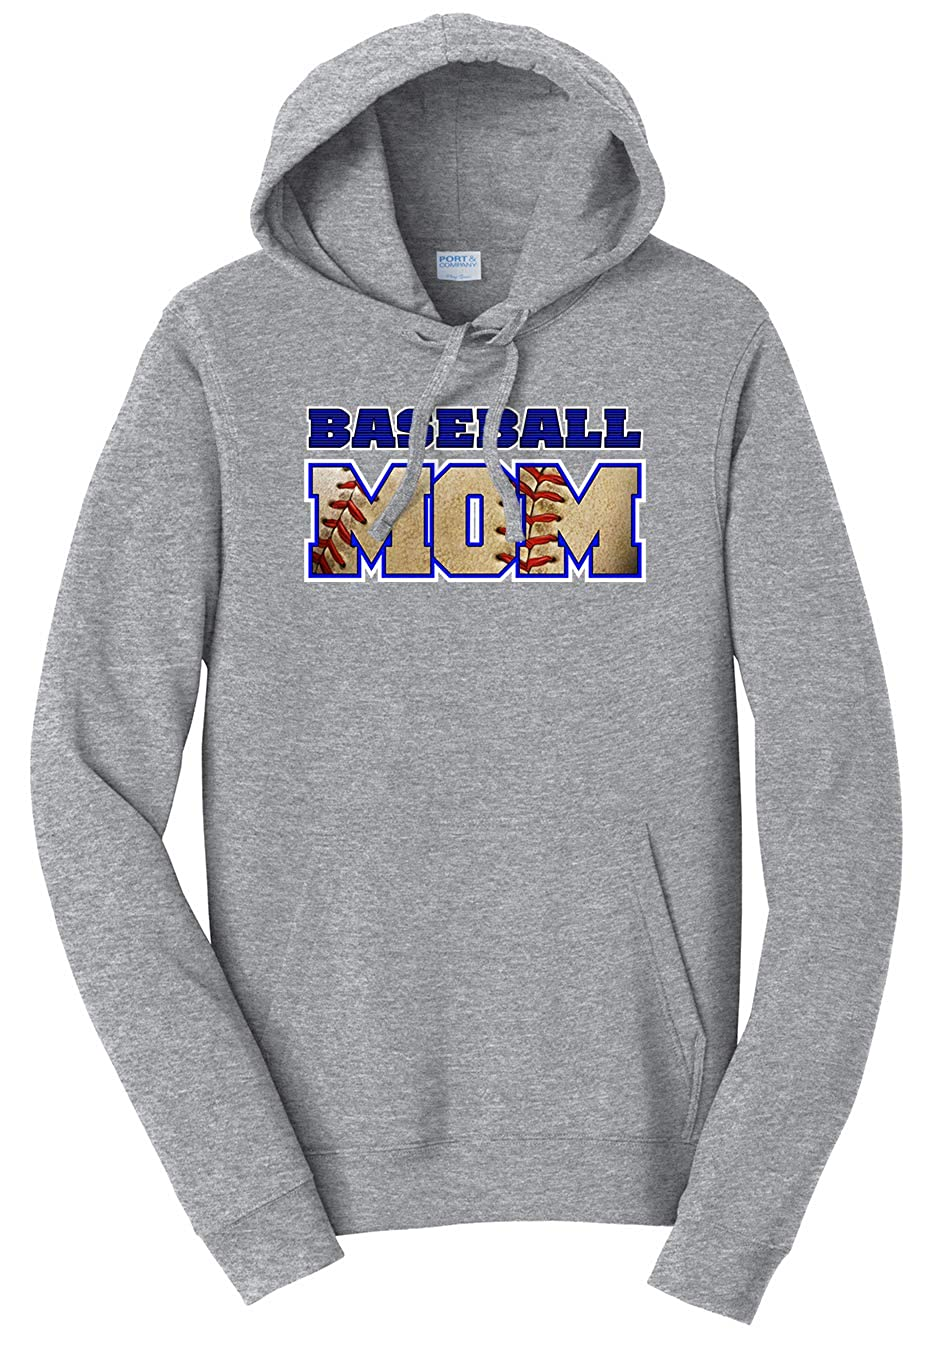 Tenacitee Unisex Baseball Mom Ball Cutout Sweatshirt